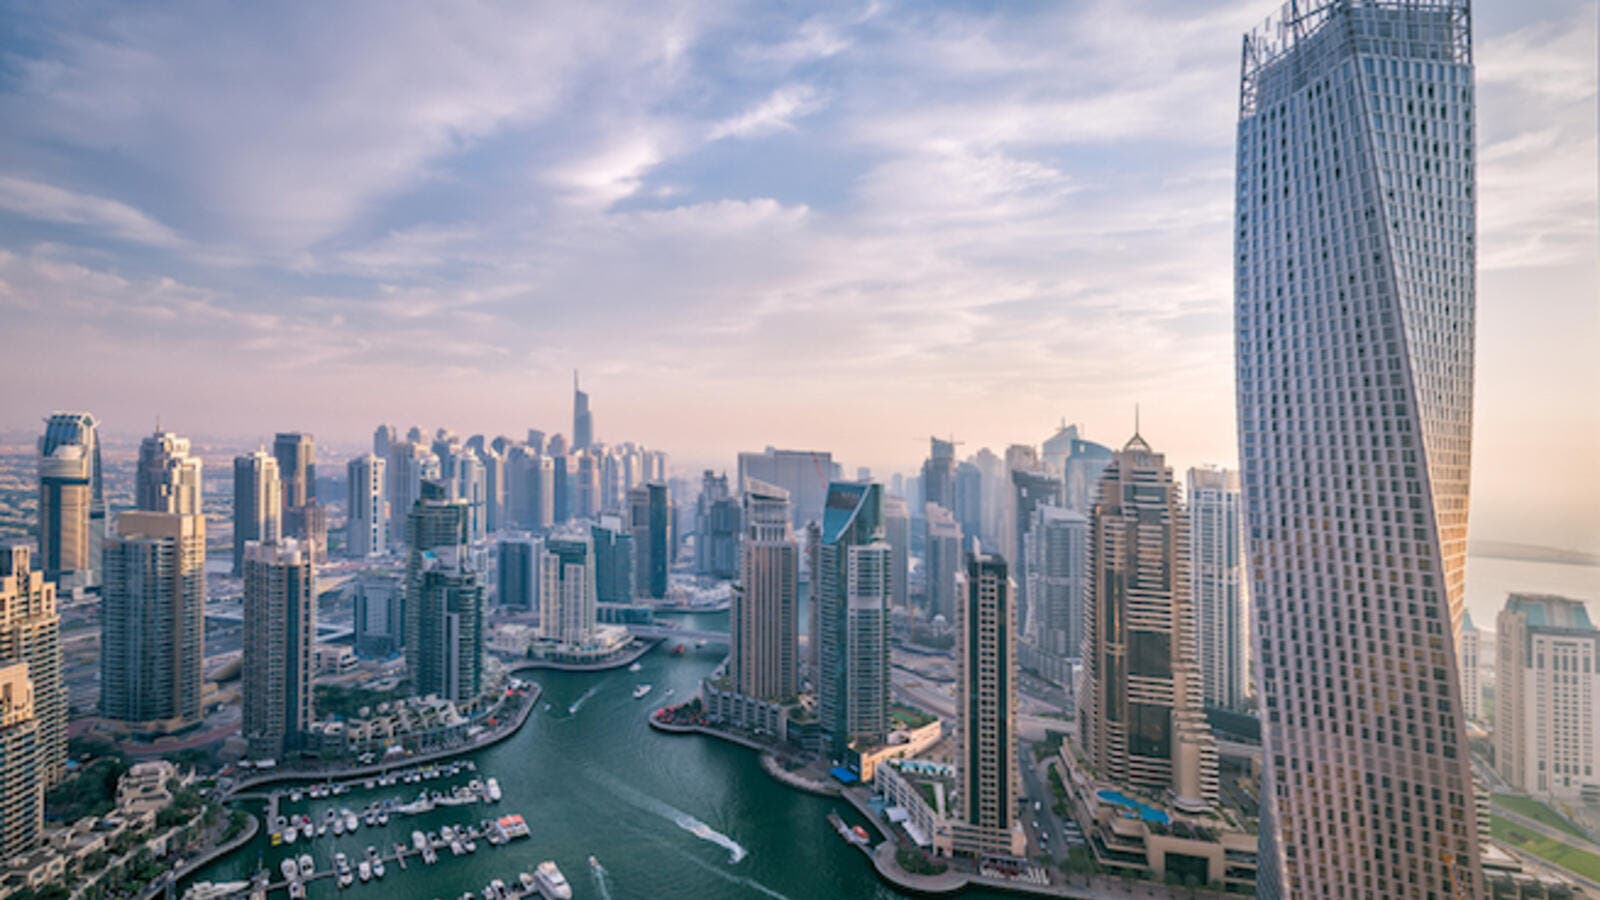 Output across Dubai's non-oil private sector increased during September. Although the rate of growth eased since August, it remained sharp overall and above the long-run average. Activity increased to the greatest extent in the wholesale & retail sector. (Shutterstock)